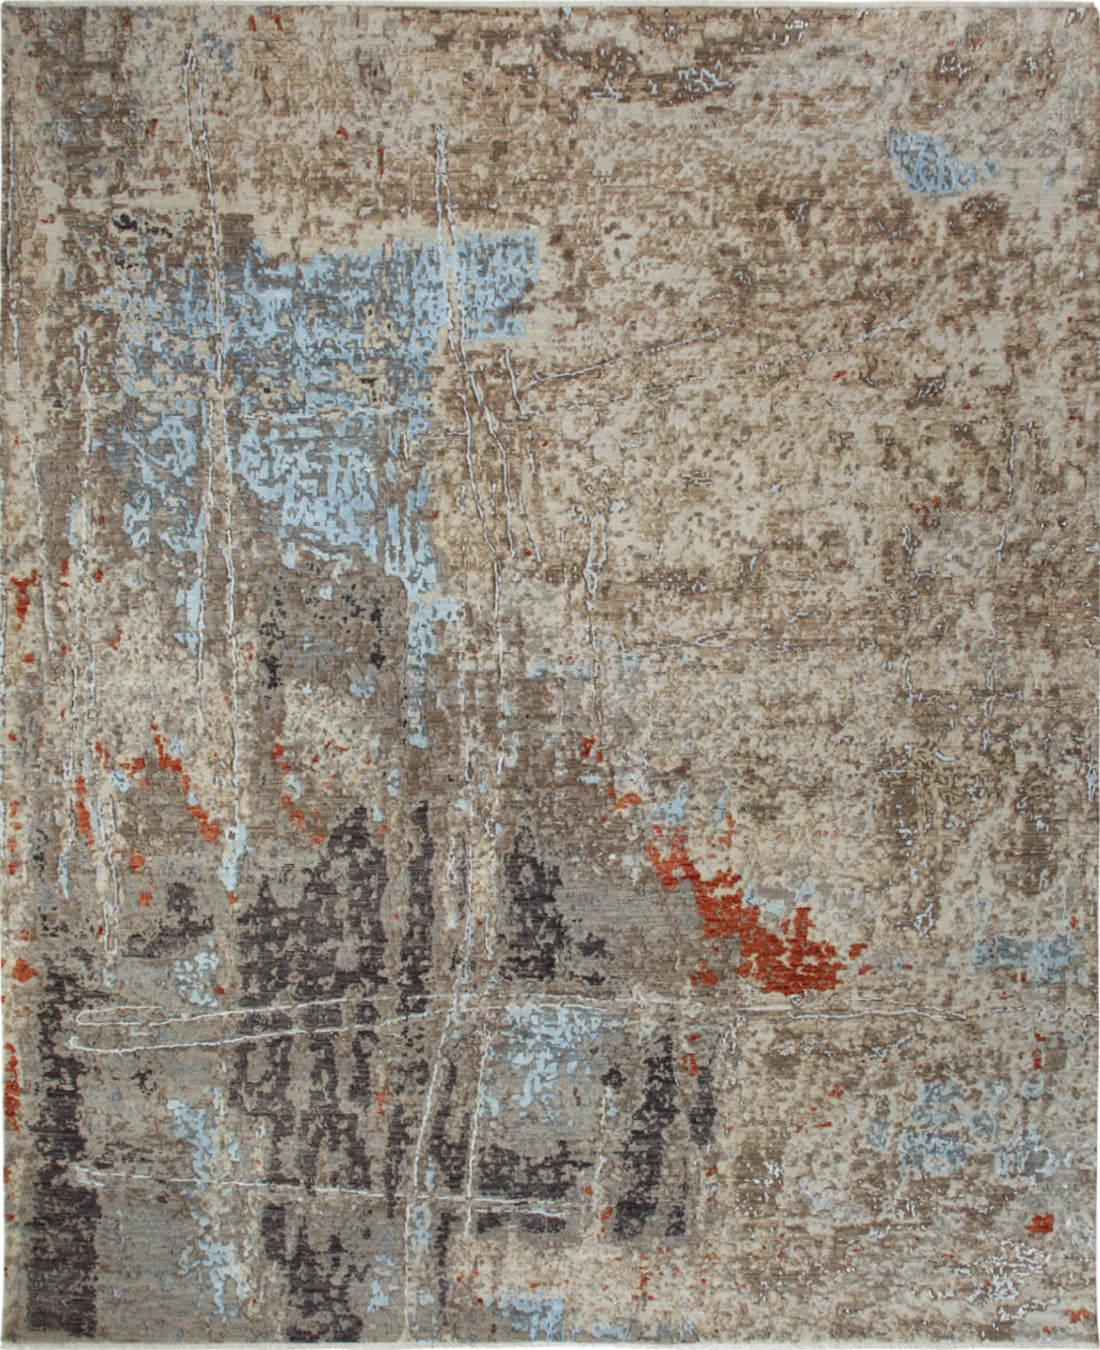 Solo Rugs Galaxy M8051-52 Beige Area Rug main image